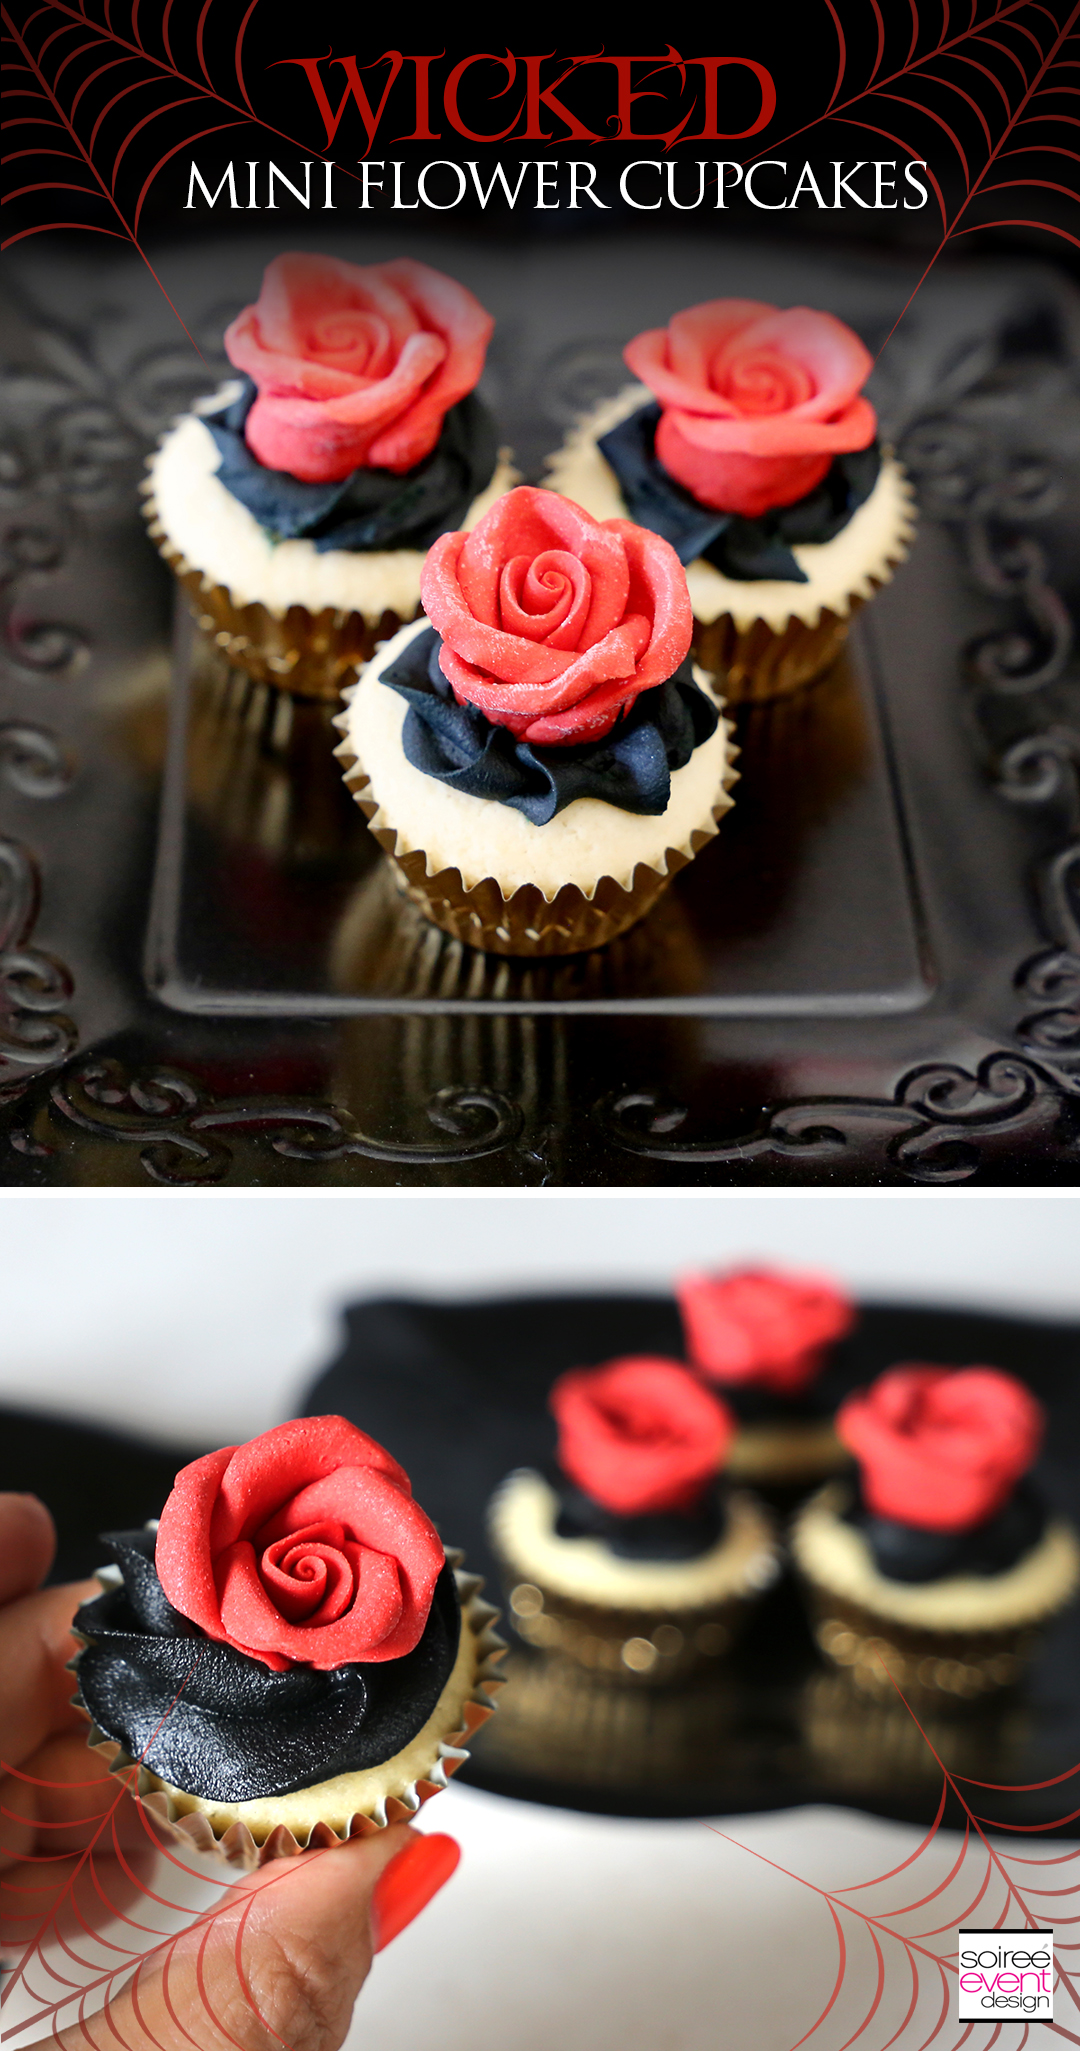 Wicked Mini Flower Cupcakes recipe